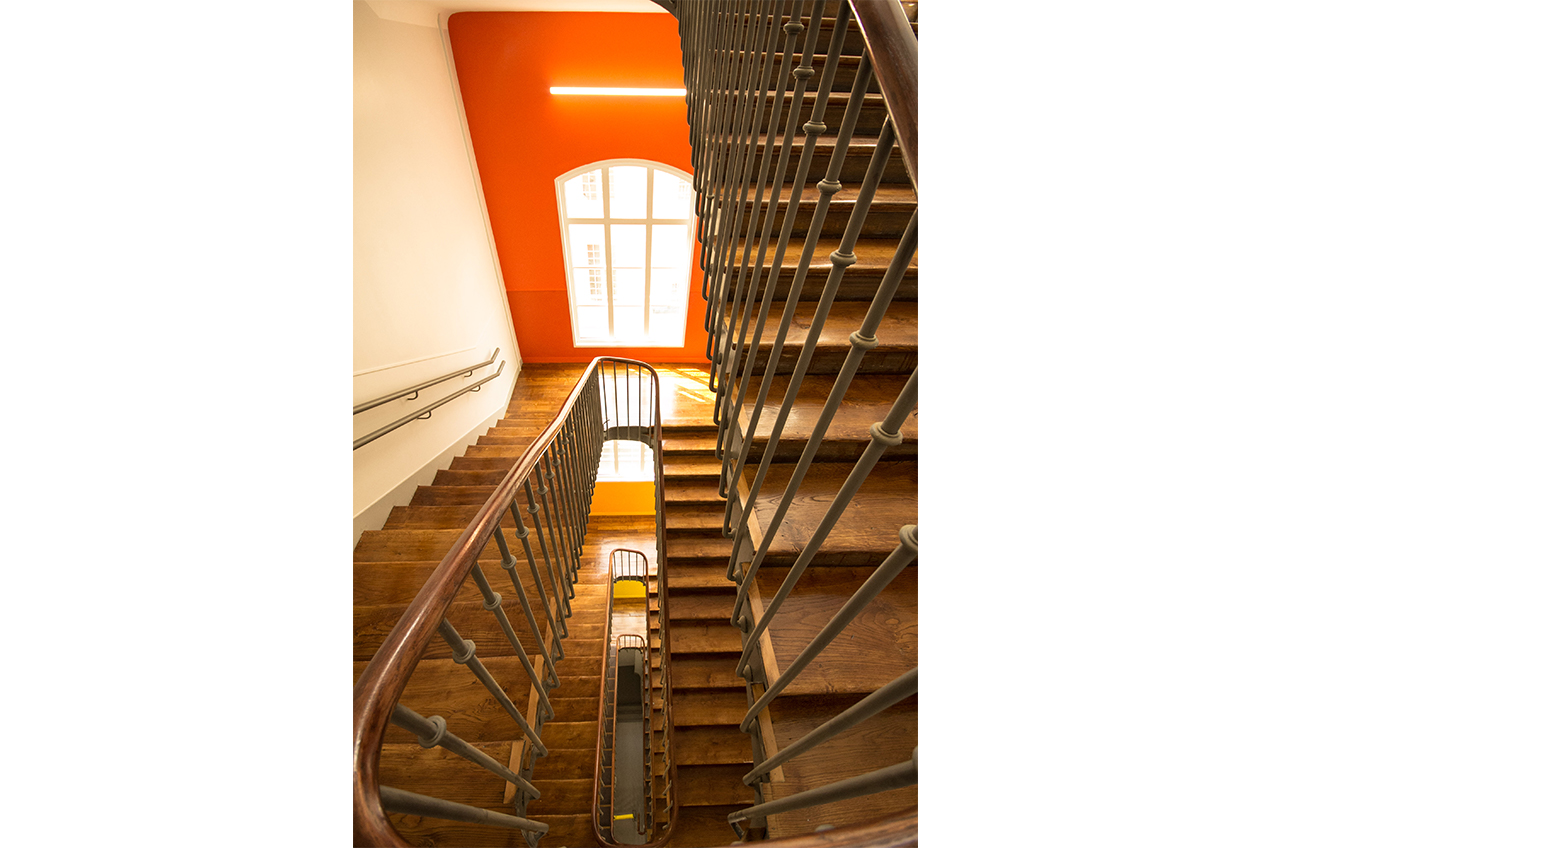 Cazenove Architecte Ecole La Rochefoucauld Rue Cler Circulation Escalier Couleur Paris 7 006